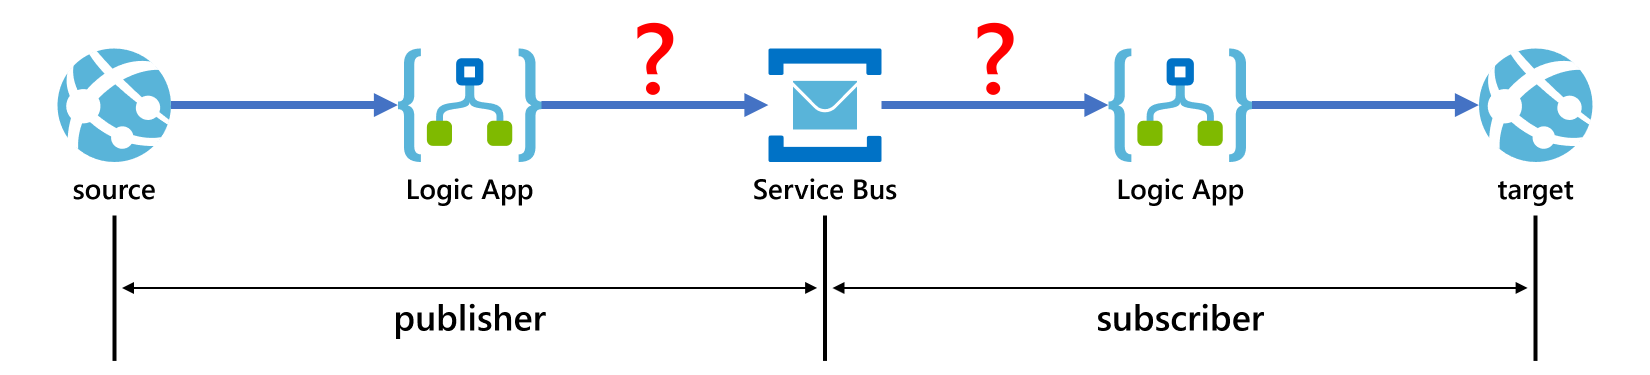 Diagram Implementing Pub/Sub Pattern with Azure Logic Apps and Service Bus